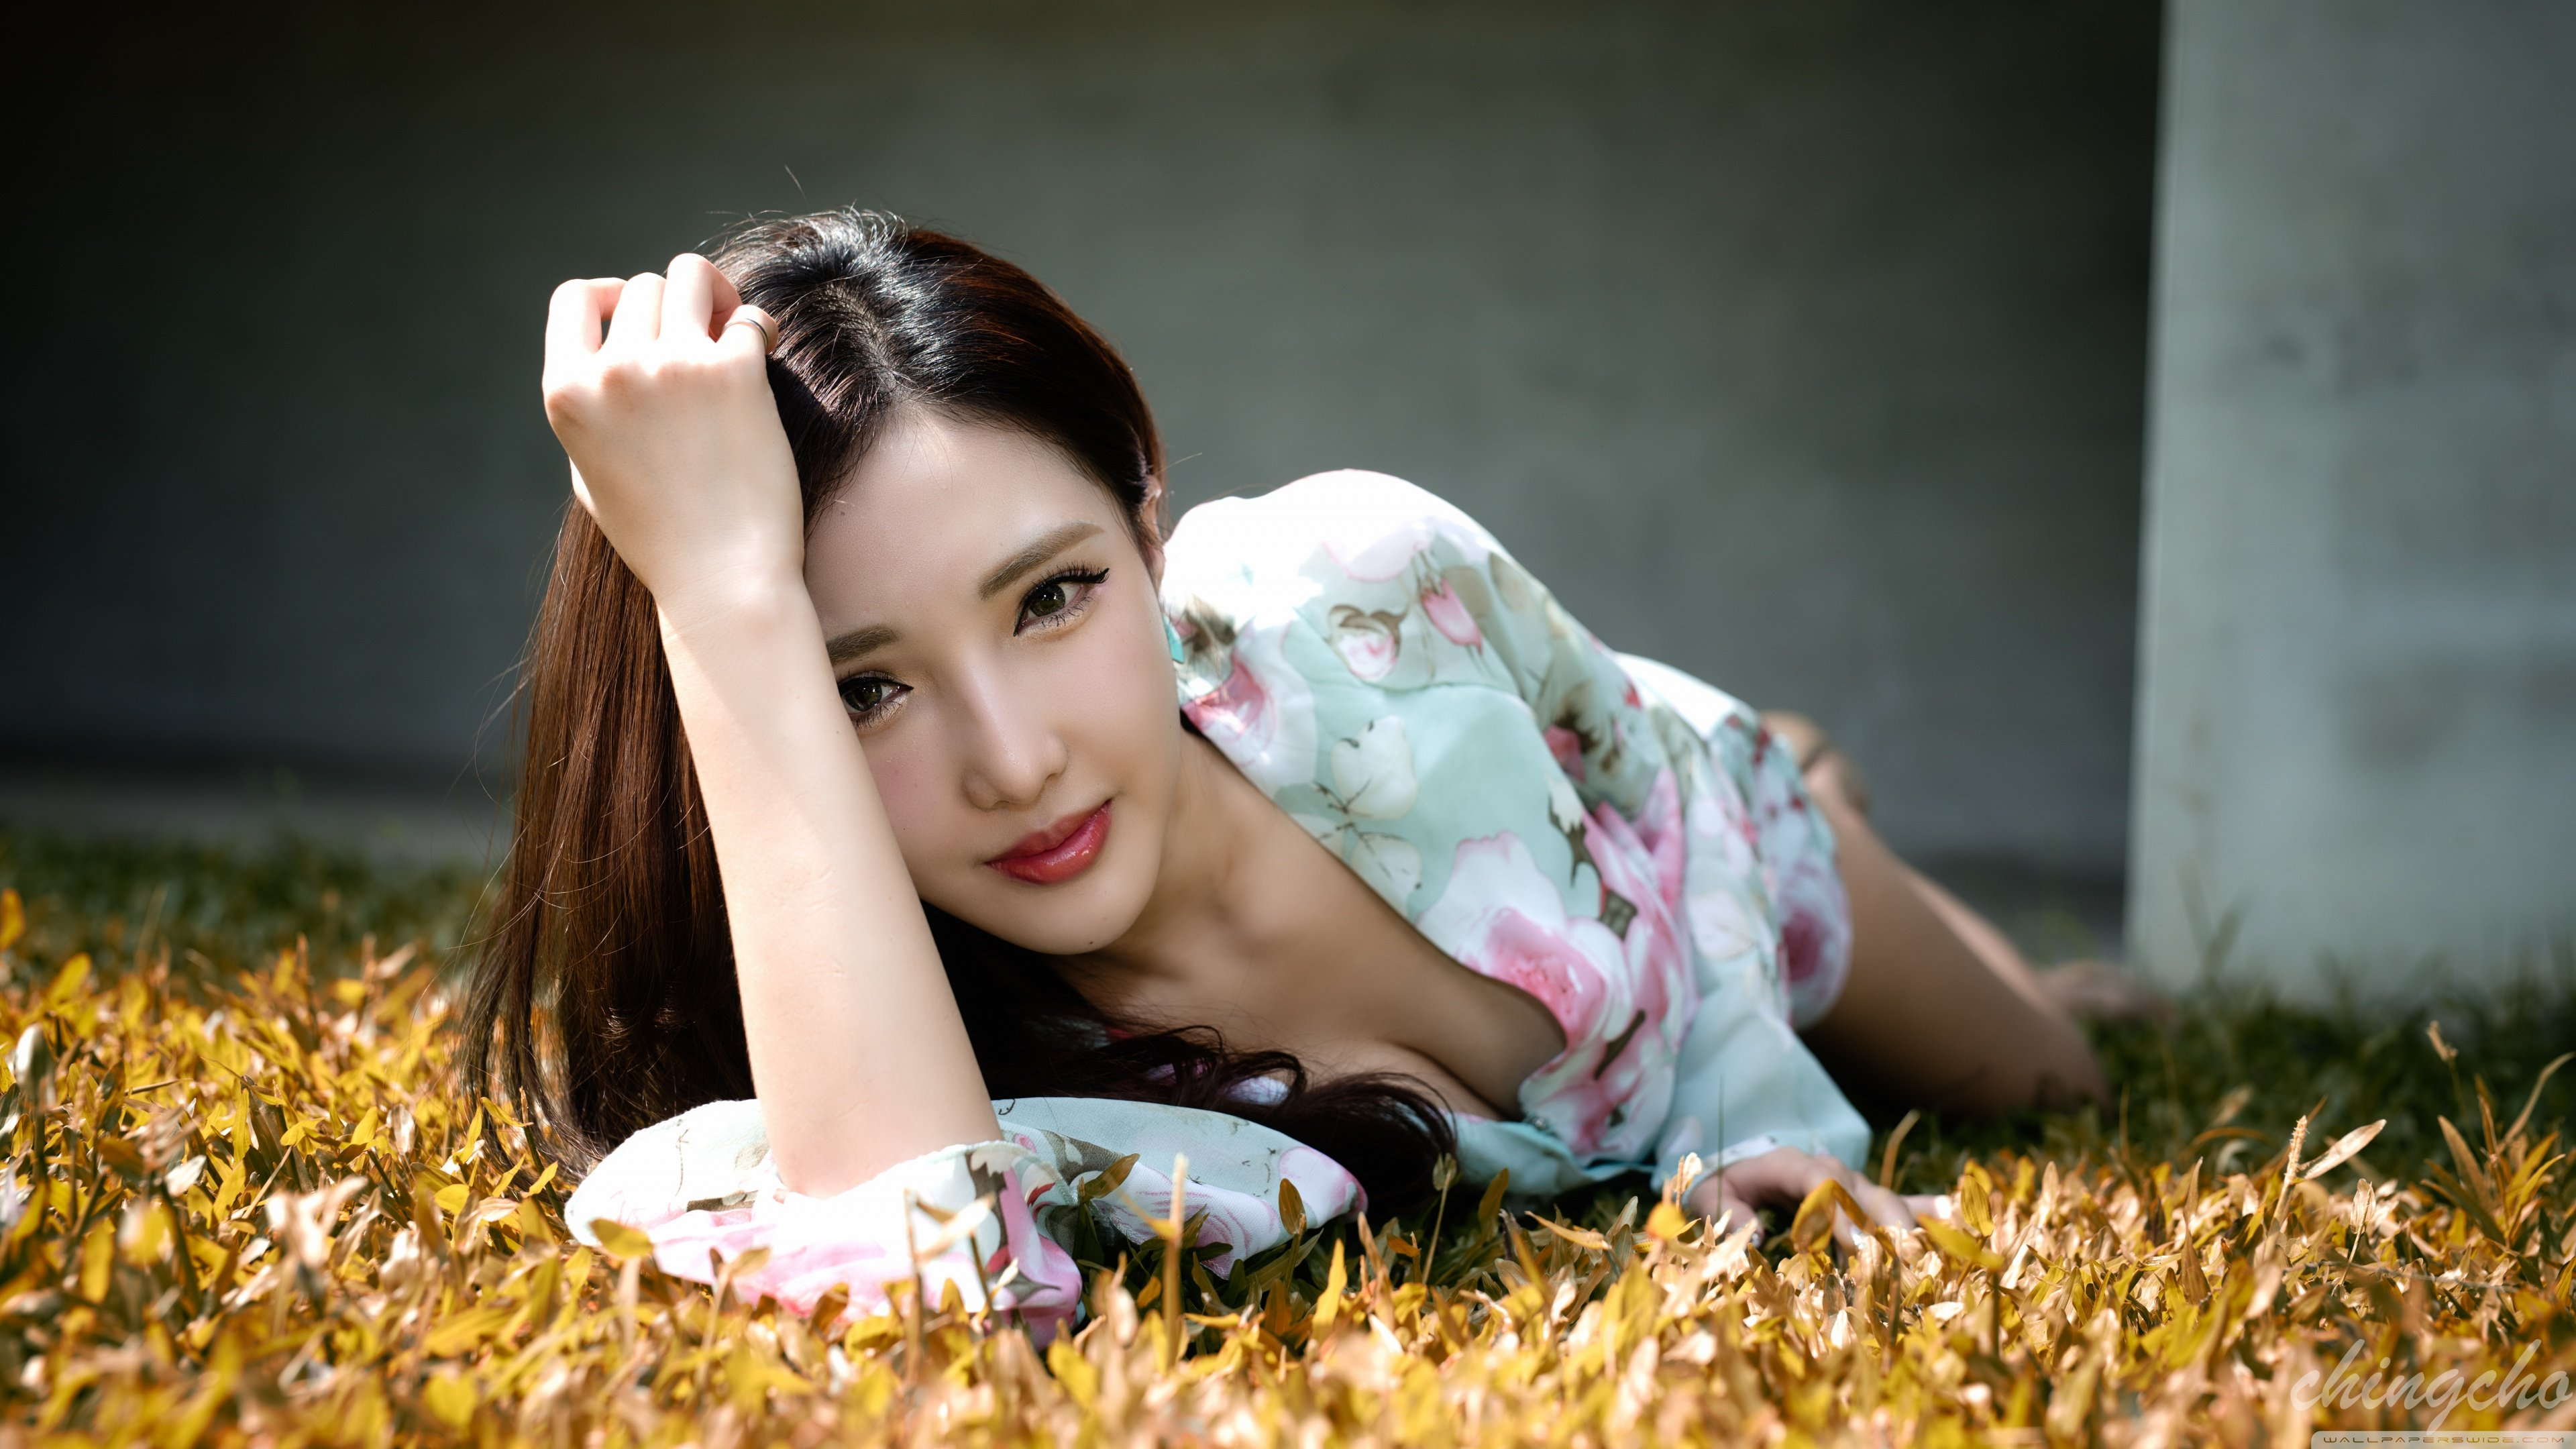 Asian Beauty Wallpapers Wallpaper Cave